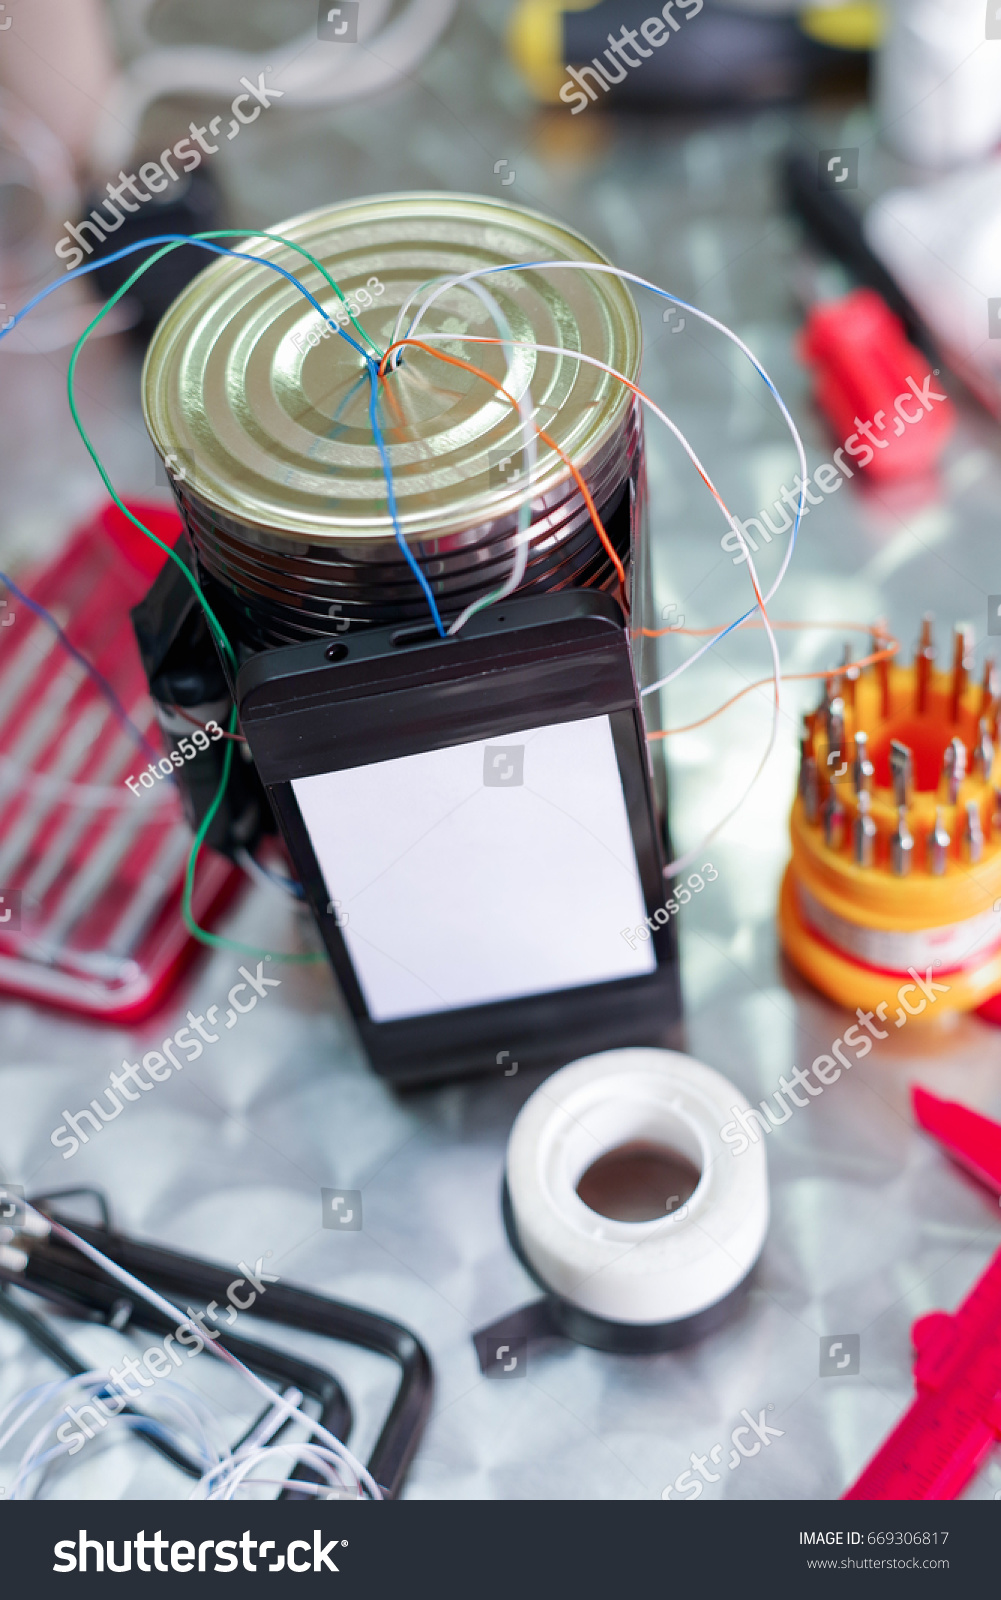 Close Improvised Homemade Bomb Explosive Device Stock Photo Edit Wwwhomemadeelectronicscom Up Of An In Blurred Background